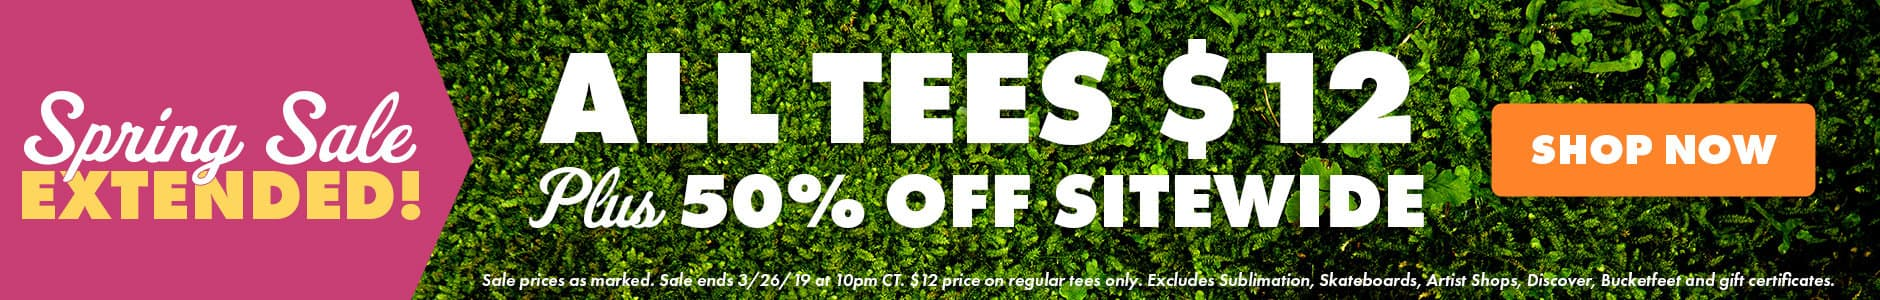 Shop the Spring Sale!